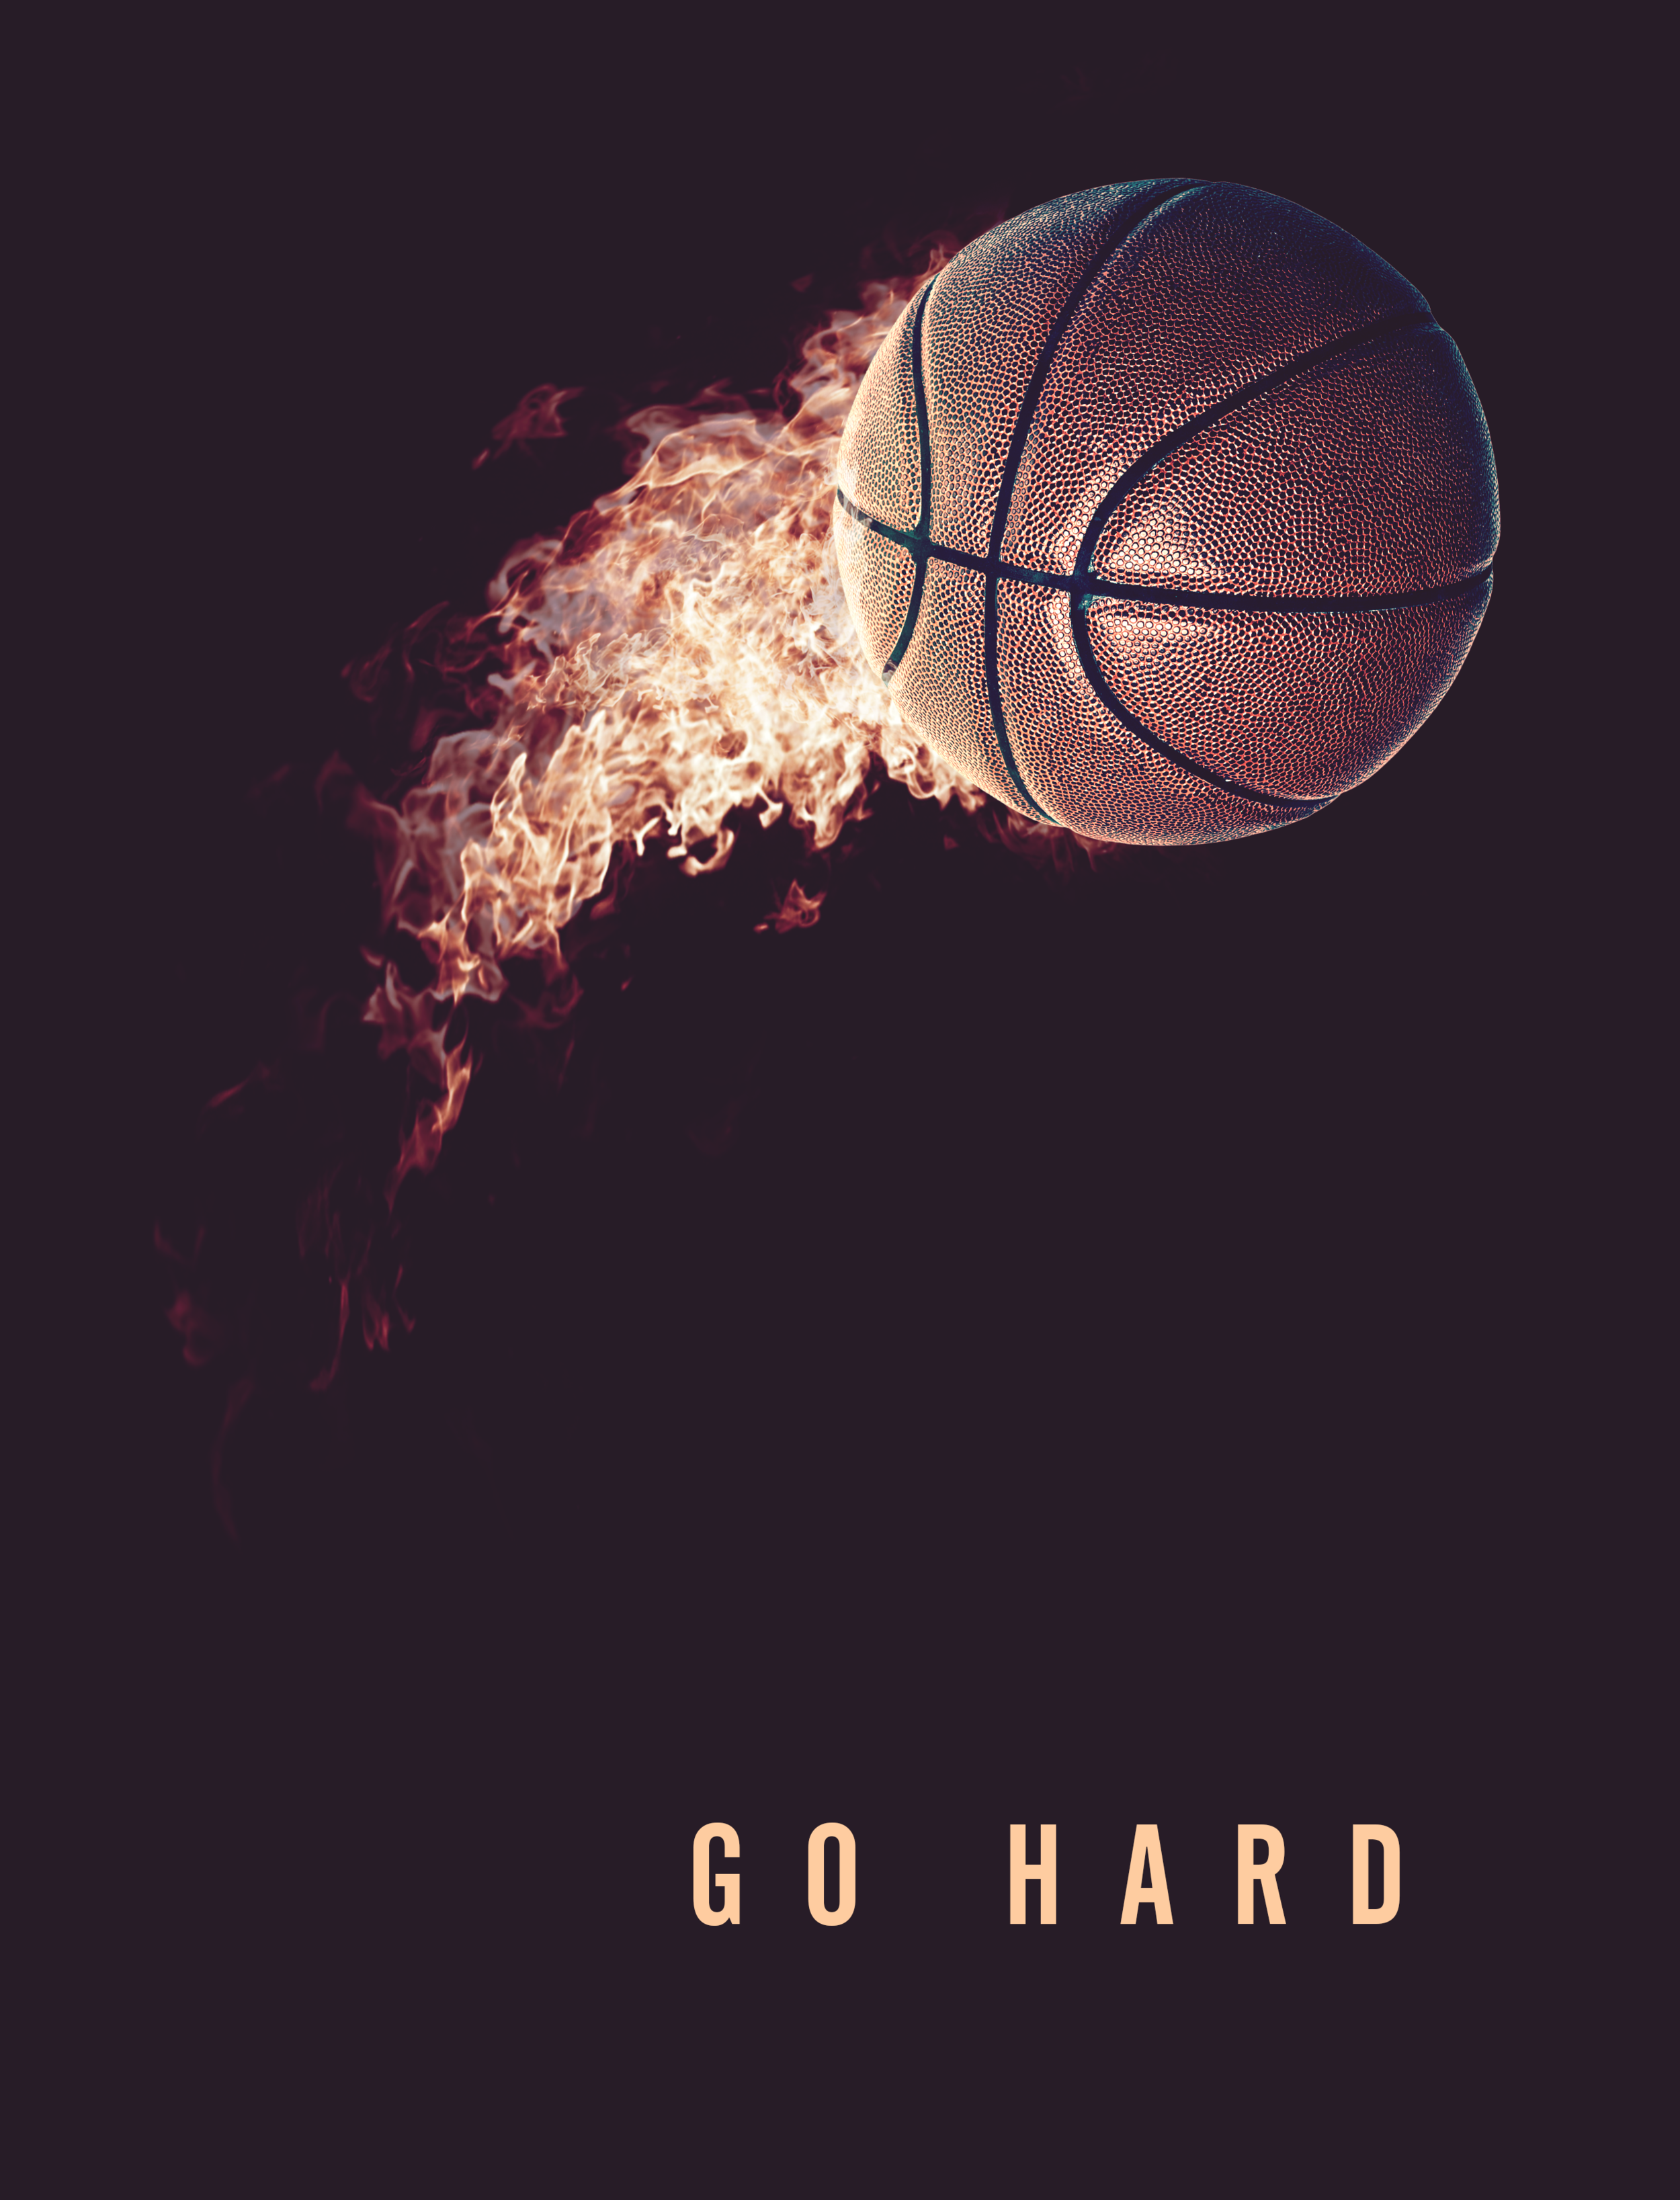 Basketball Poster Design by Noah Camp